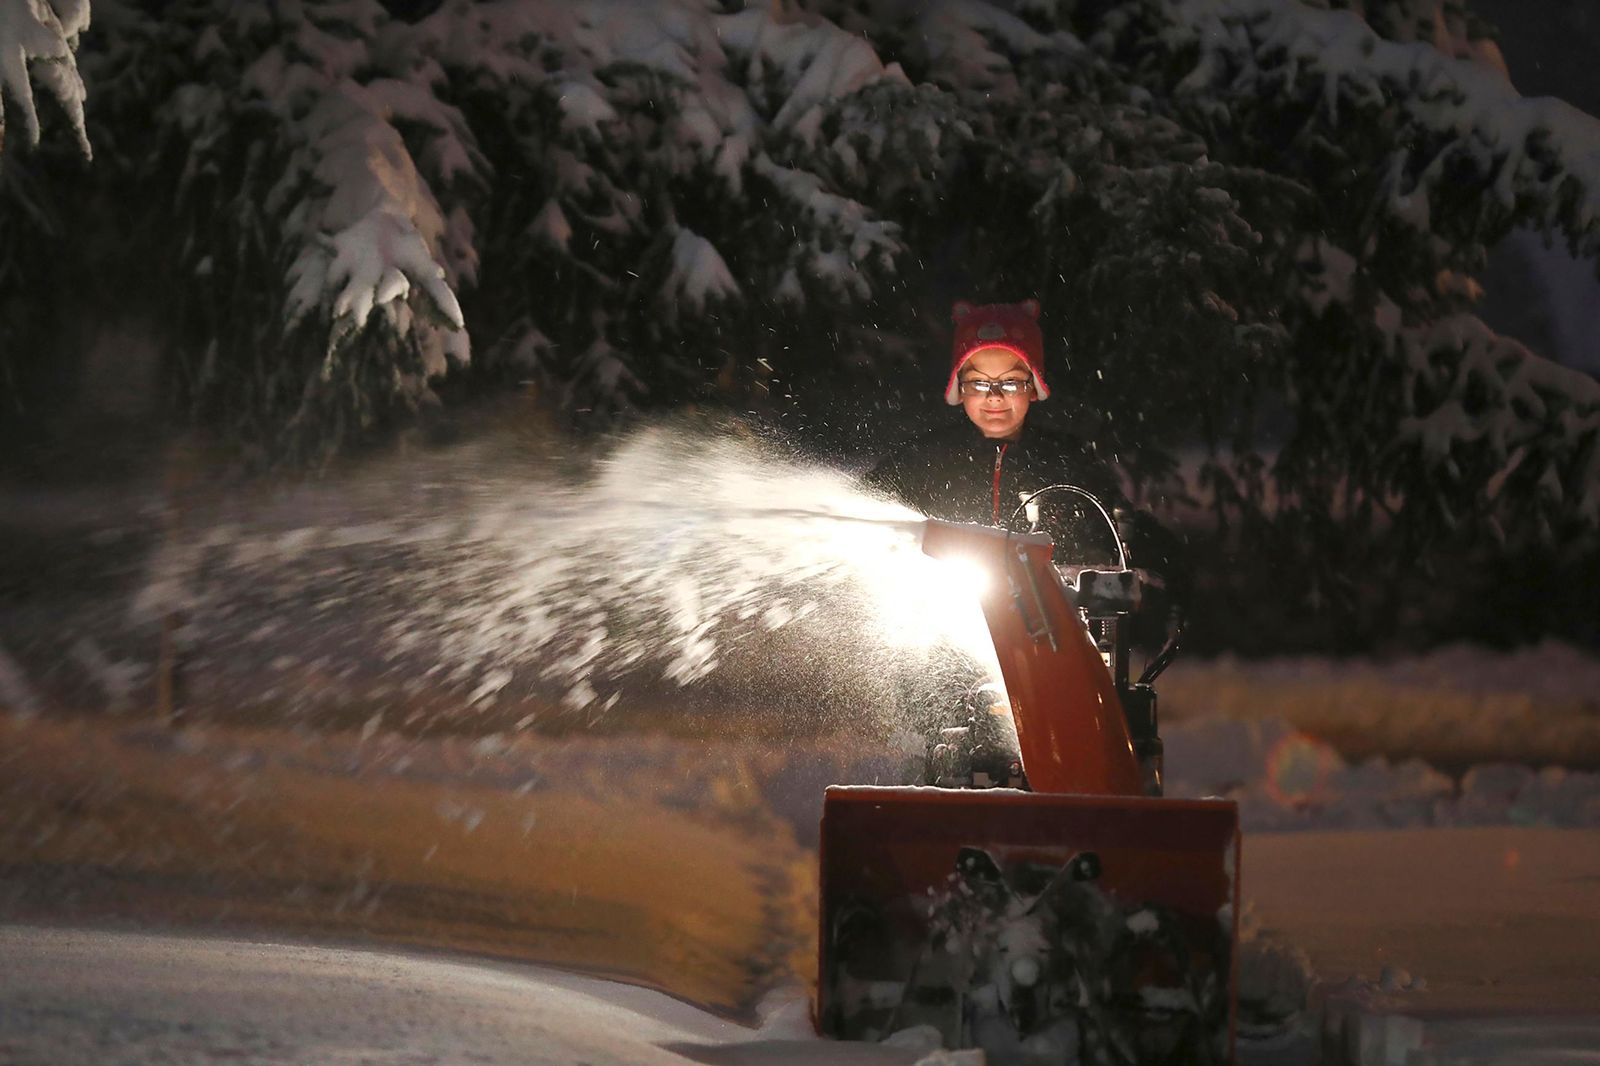 Ryan Corl, 12, uses a snowblower to clear the sidewalk in front of his home Tuesday, Nov. 12, 2019 in Brighton, NY. Western New York is coping with its first major snowstorm of the season. (Tina MacIntyre-Yee/Rochester Democrat and Chronicle via AP)